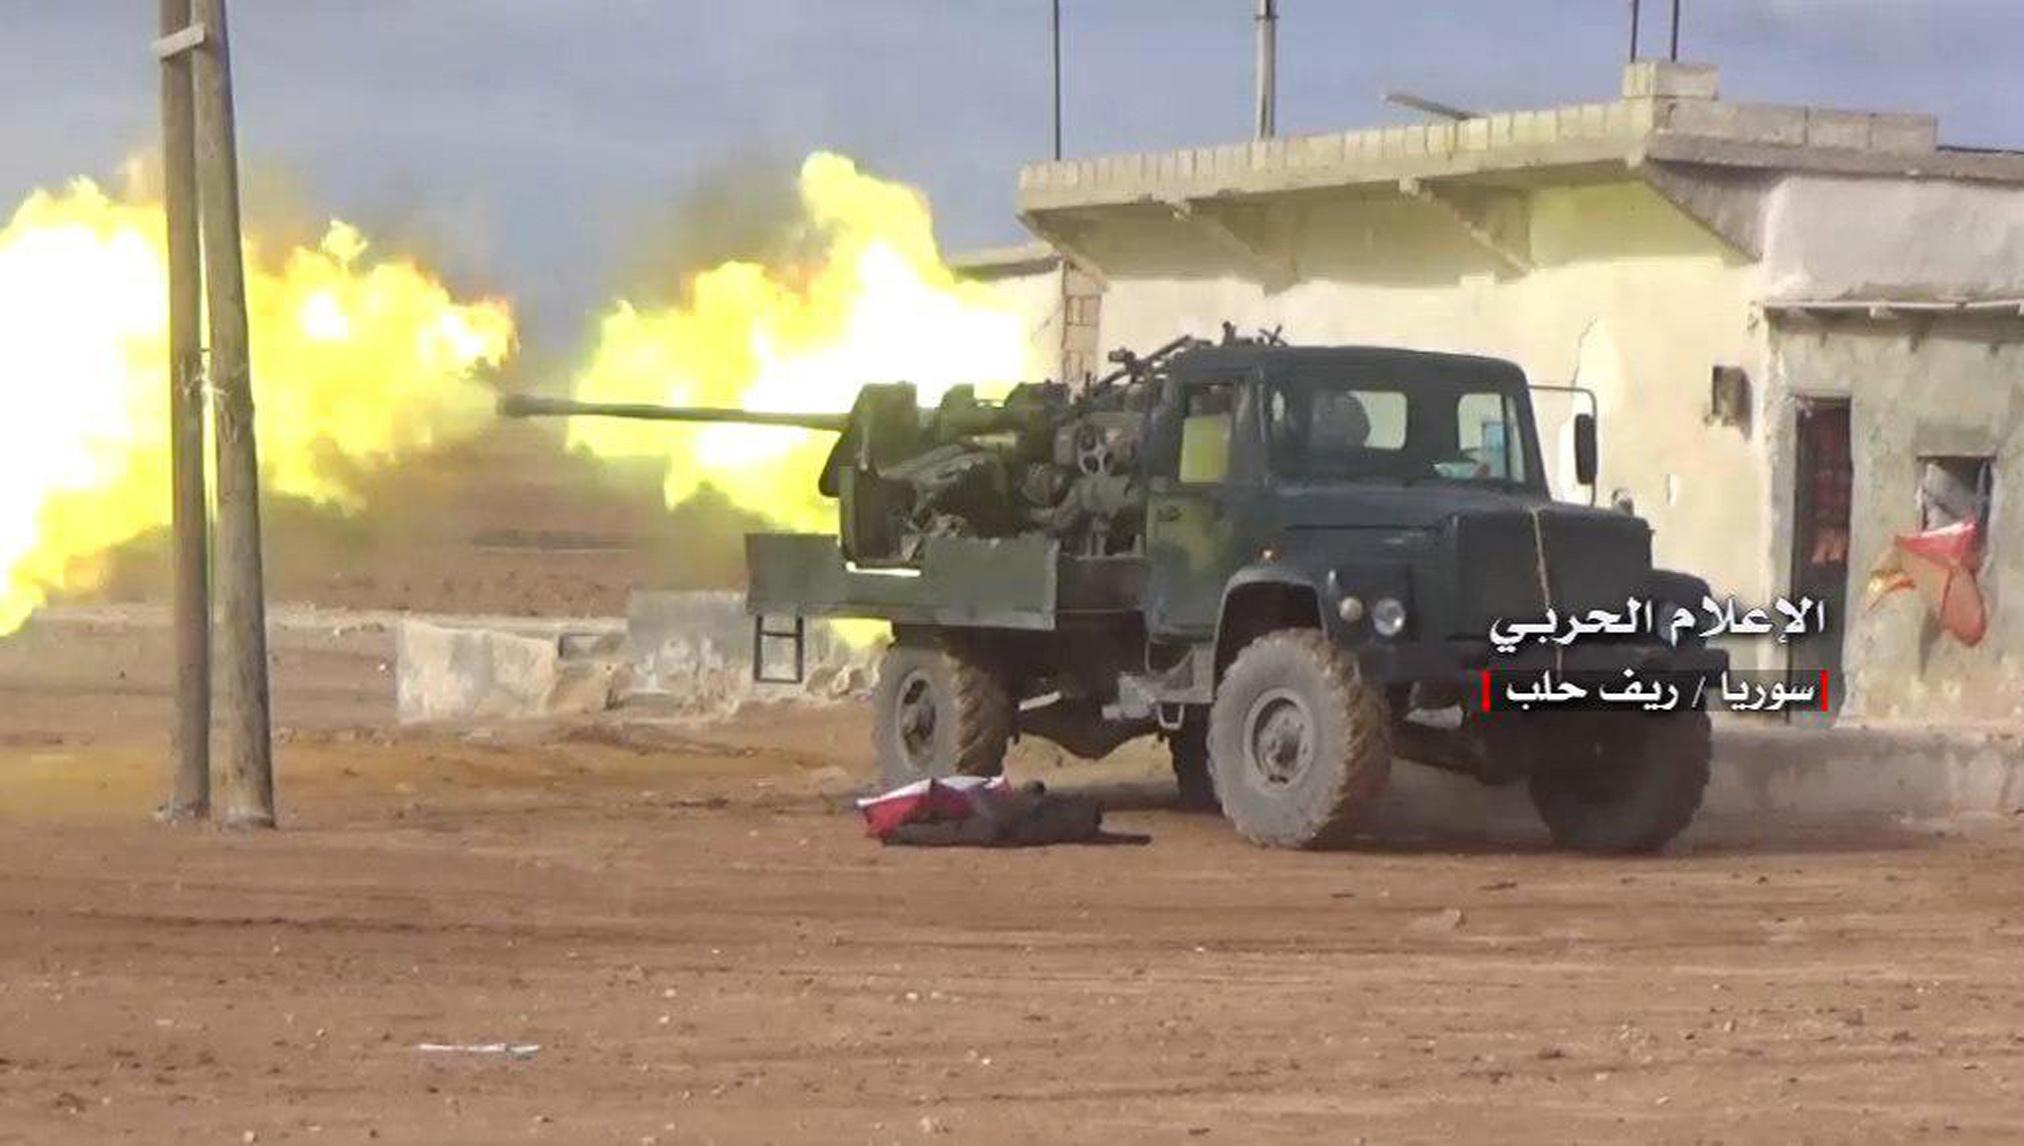 This photo provided on Saturday, Jan. 20, 2018, by the government-controlled Syrian Central Military Media, shows Syrian government forces firing  their weapon during a battle against the Syrian opposition fighters, in the southern Aleppo countryside, Syria. Syrian state TV says government forces have retaken a key air base in northwest Syria that was lost to rebels in 2015. The state broadcaster says Syrian troops fought their way into the strategic Abu Zuhour air base on Saturday, in Idlib province. (Syrian Central Military Media, via AP)